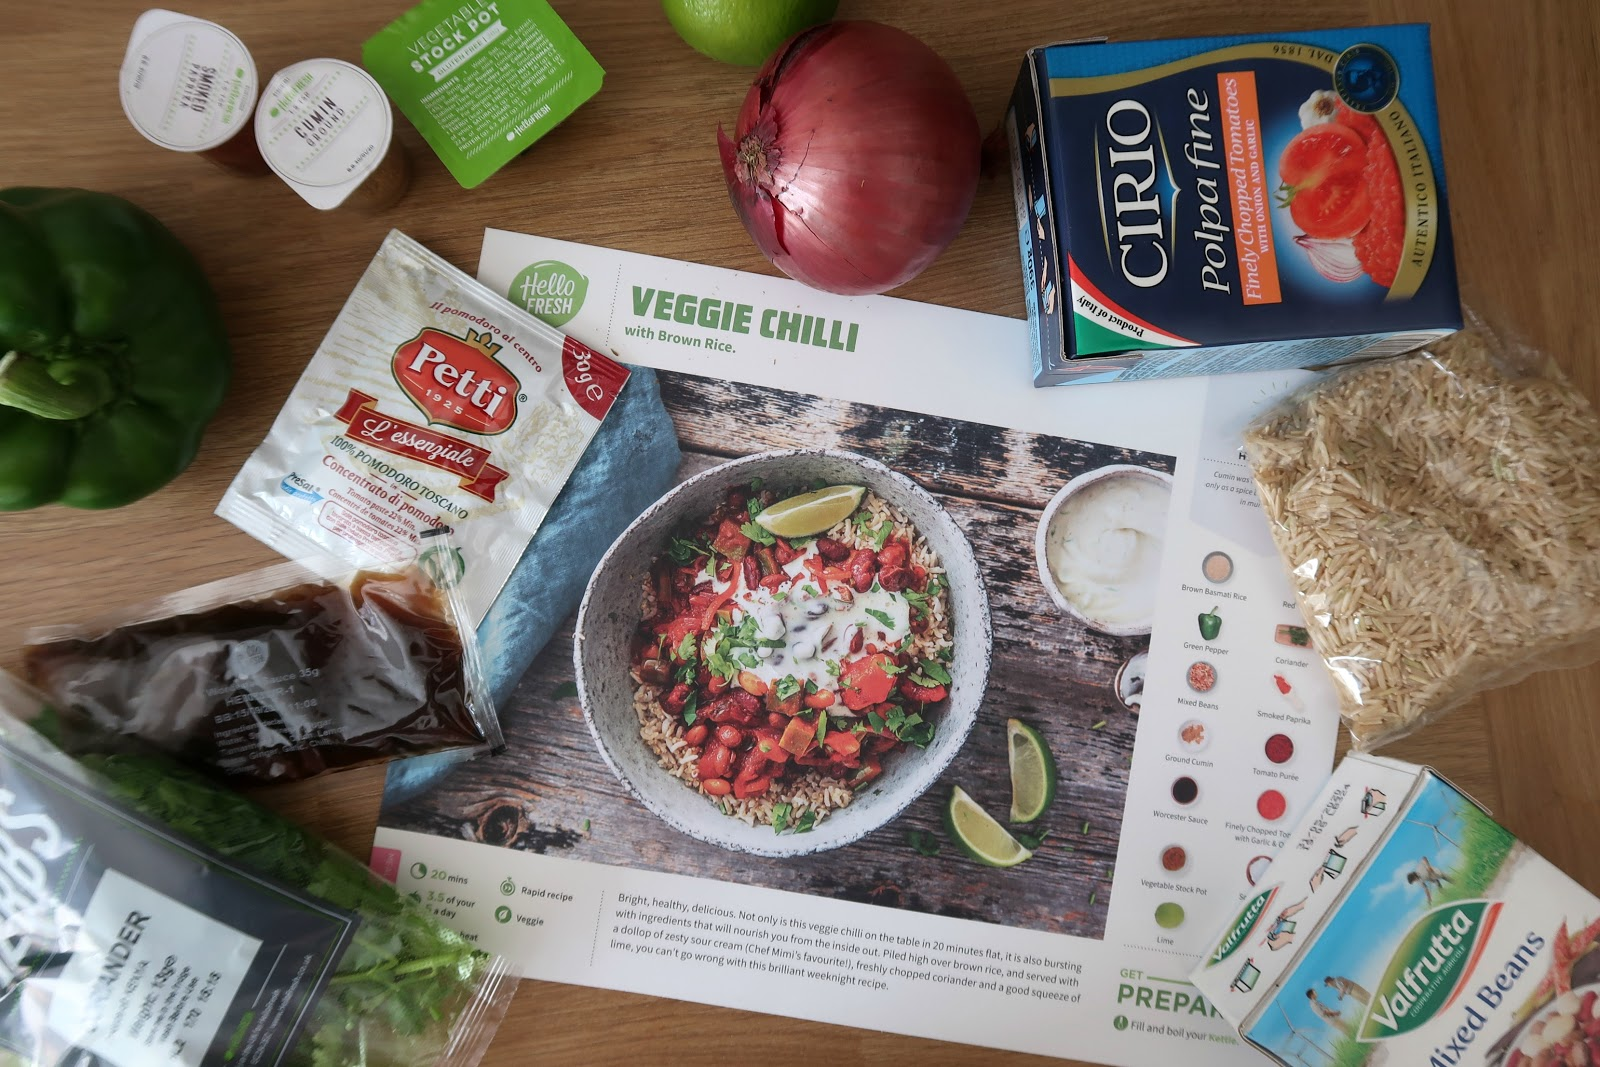 For Sale Meal Kit Delivery Service  Hellofresh